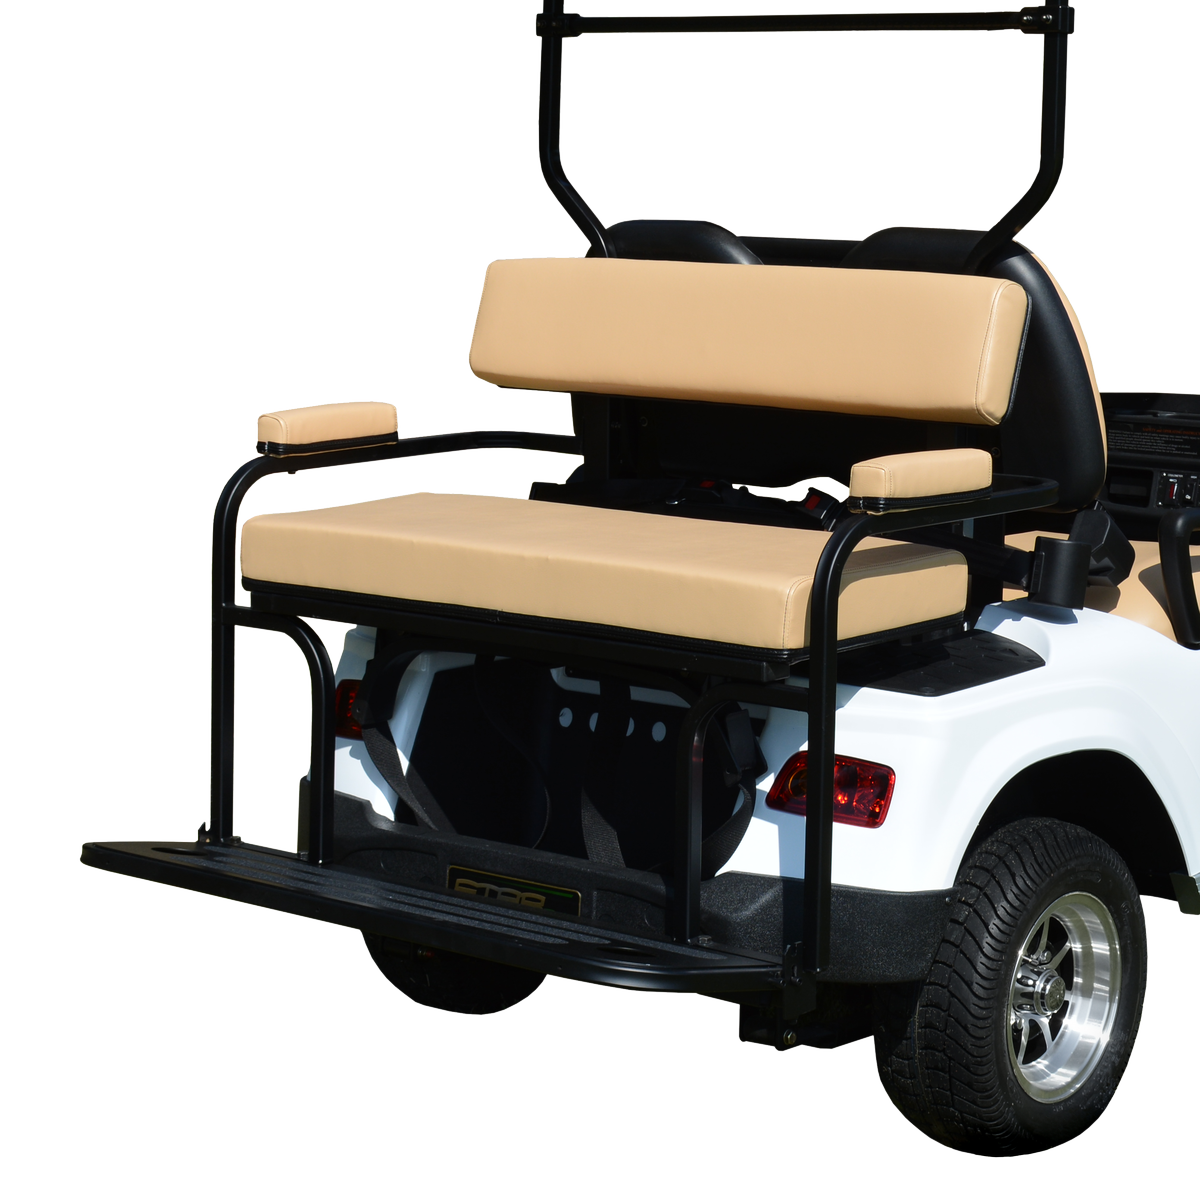 star cart 2 in 1 combo golf cart rear seat kit and bag holder | golf cart  tire supply